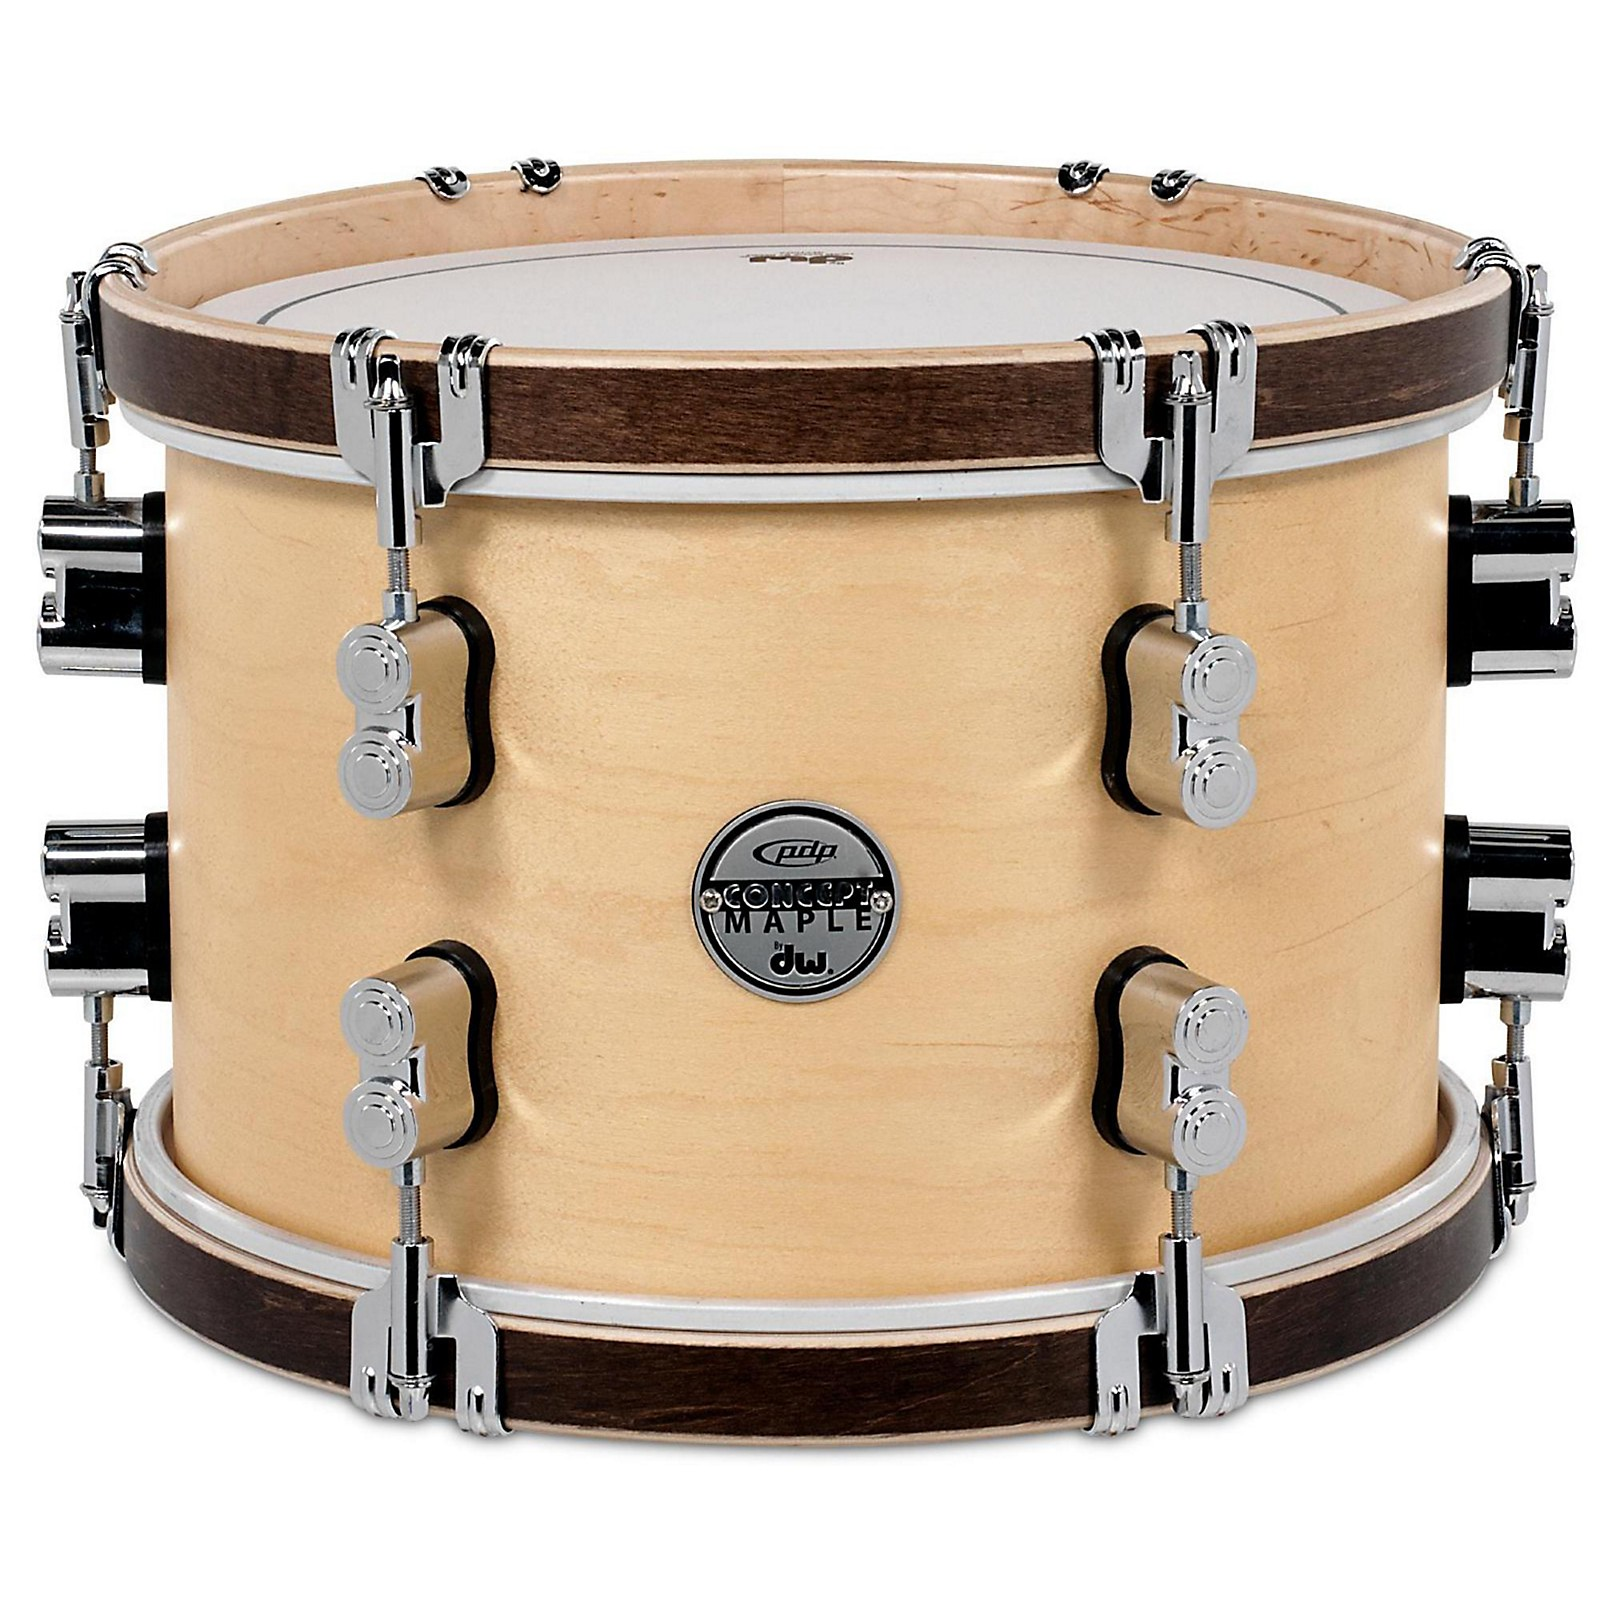 PDP by DW Concept Maple Classic Natural with Tobacco Hoops Tom